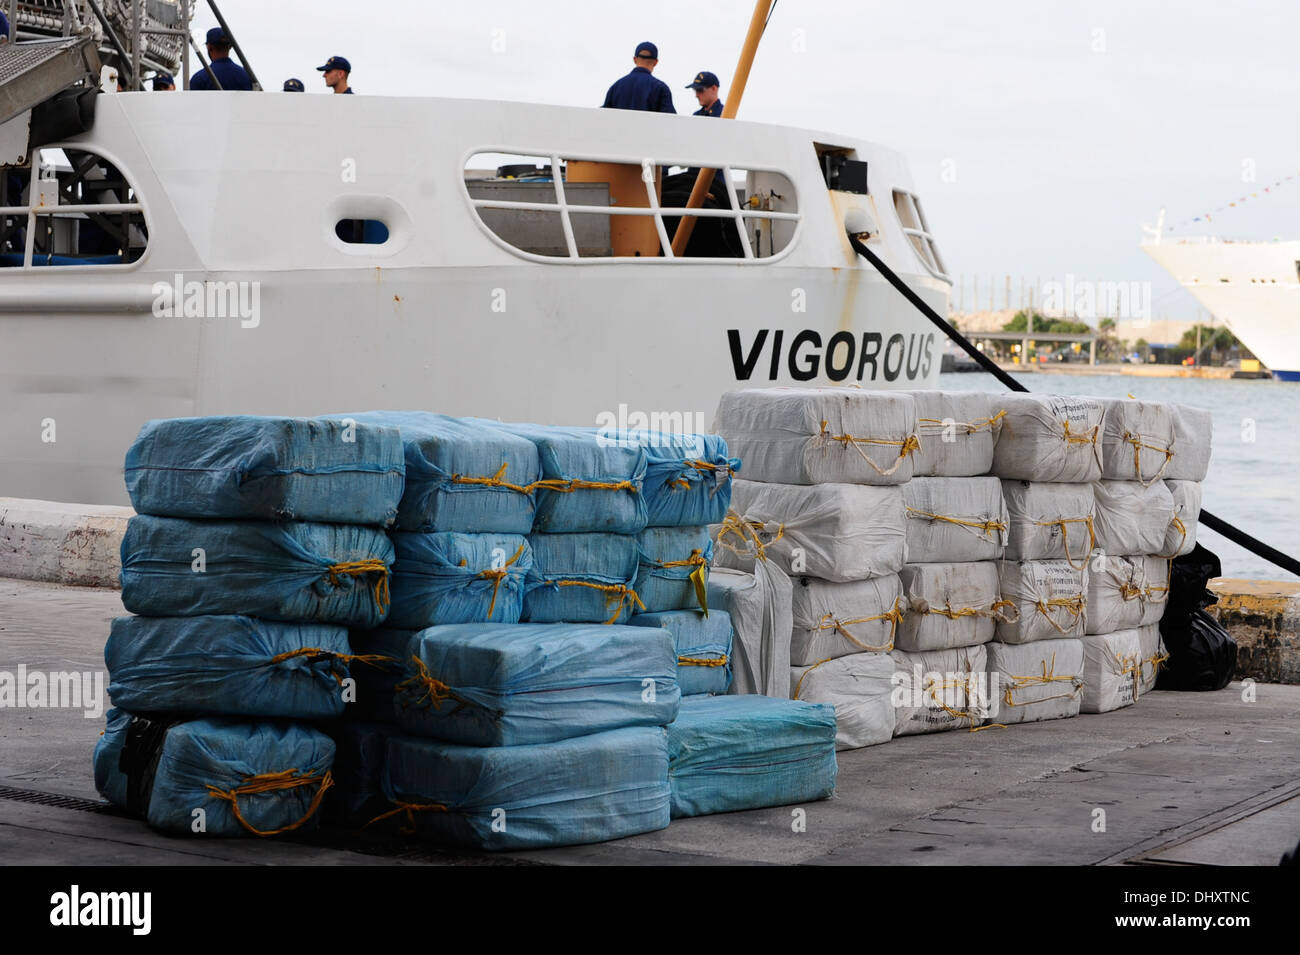 Forty-one bales of cocaine are stacked behind the Coast Guard Cutter Vigorous during a drug offload at Port Everglades, Fla., Nov. 15, 2013. The drugs are the results of two interdictions carried out as part of Operation Martillo. Coast Guard photo by Pet - Stock Image